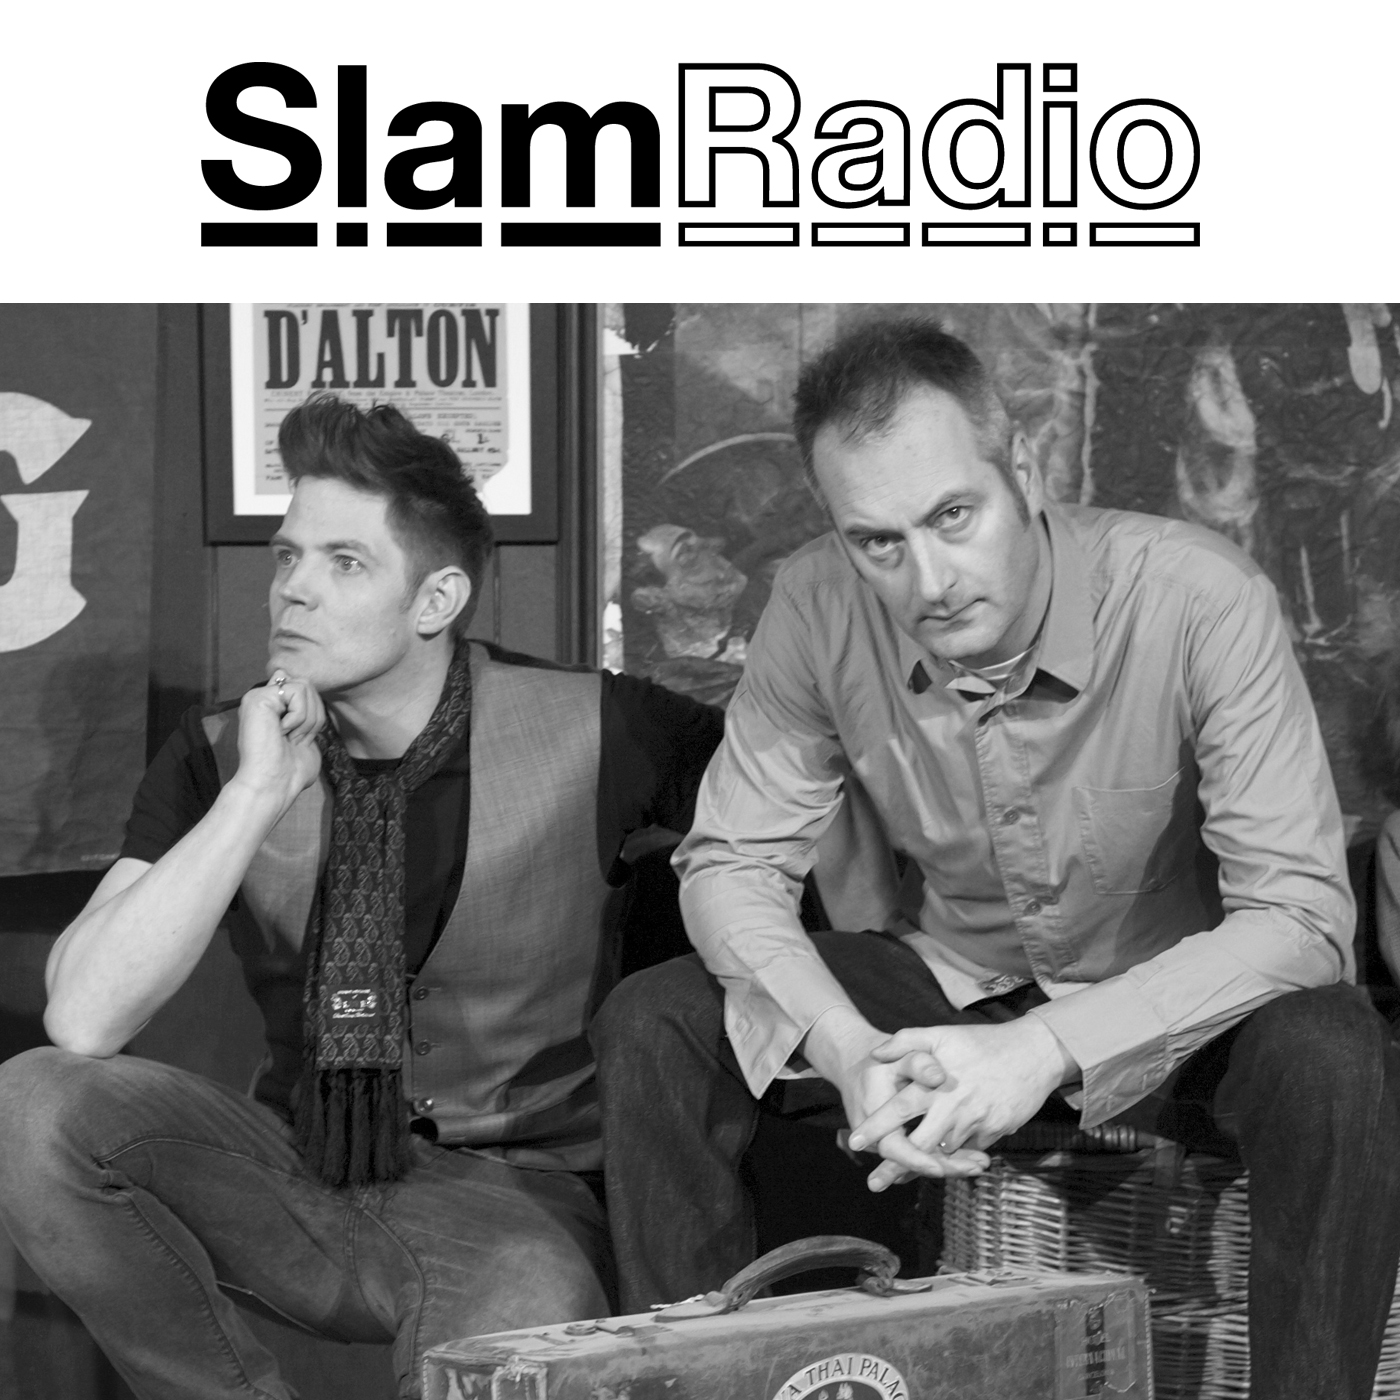 Delta Podcasts Presents SlamRadio (29.09.2017)